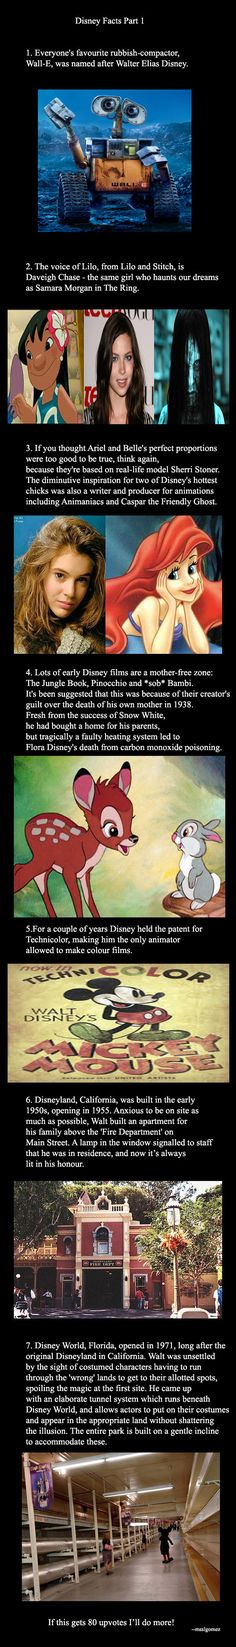 Disney Facts Part 1